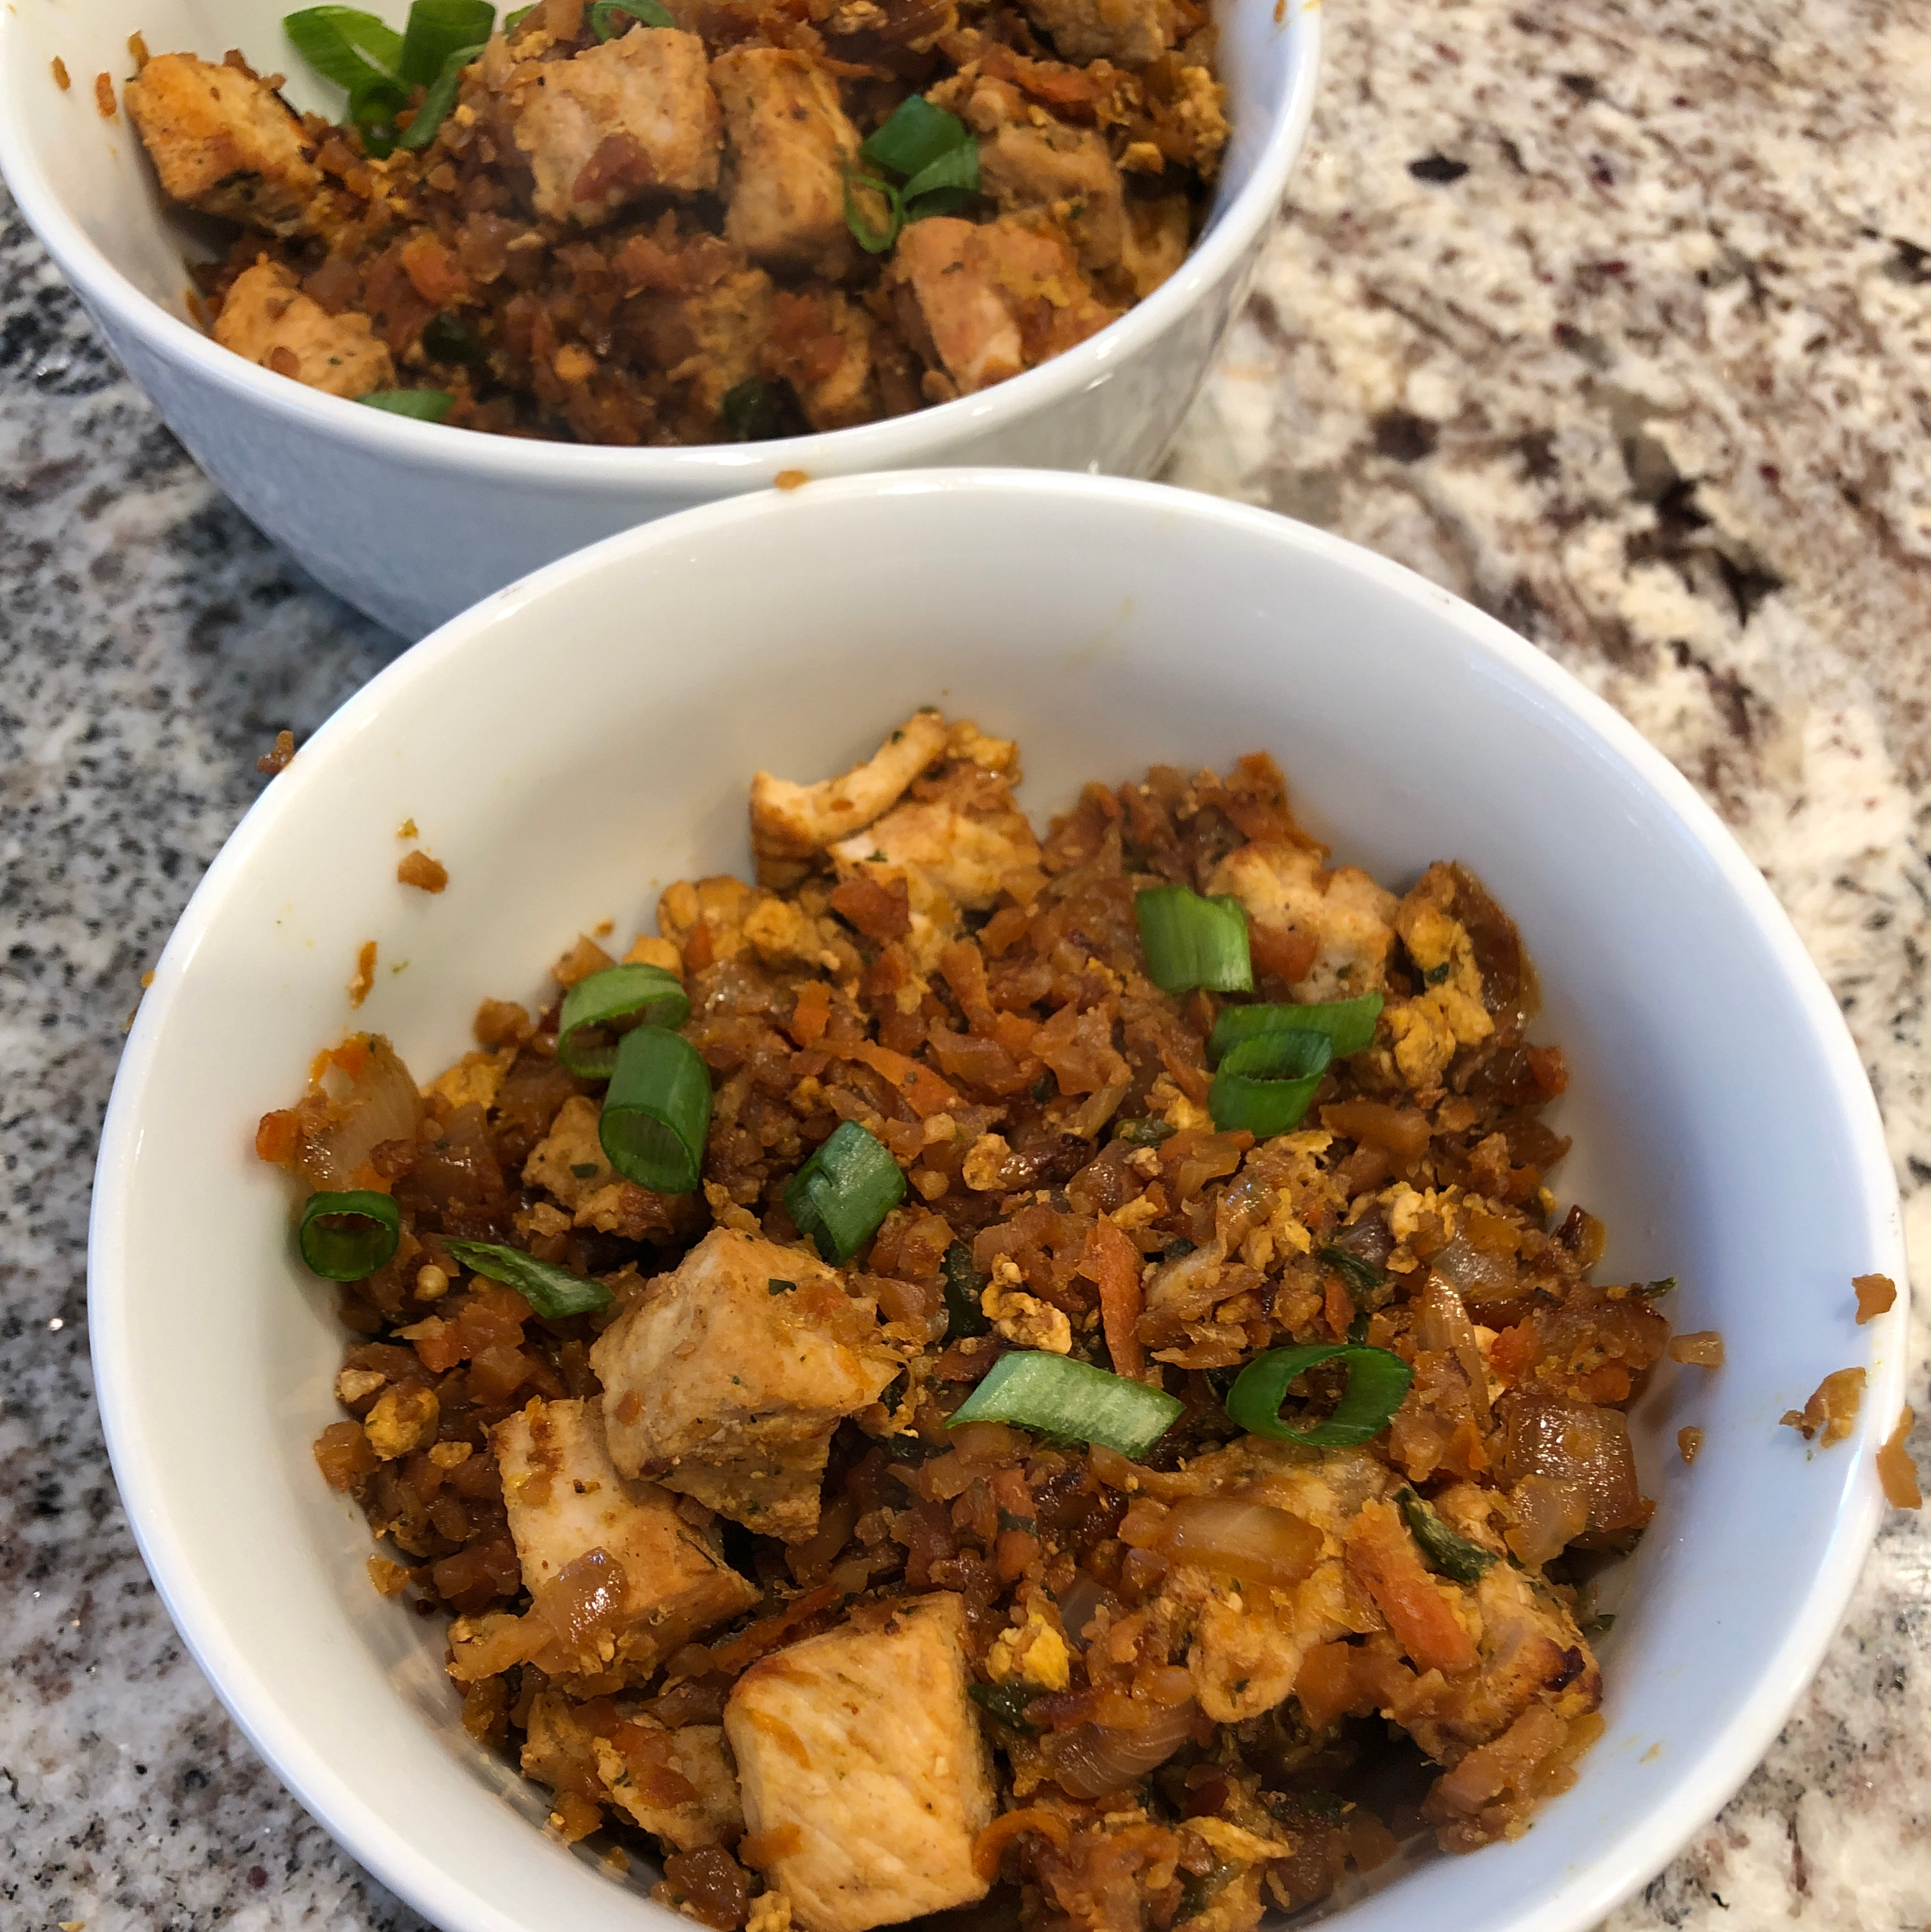 Spicy Cauliflower Fried 'Rice' with Pork